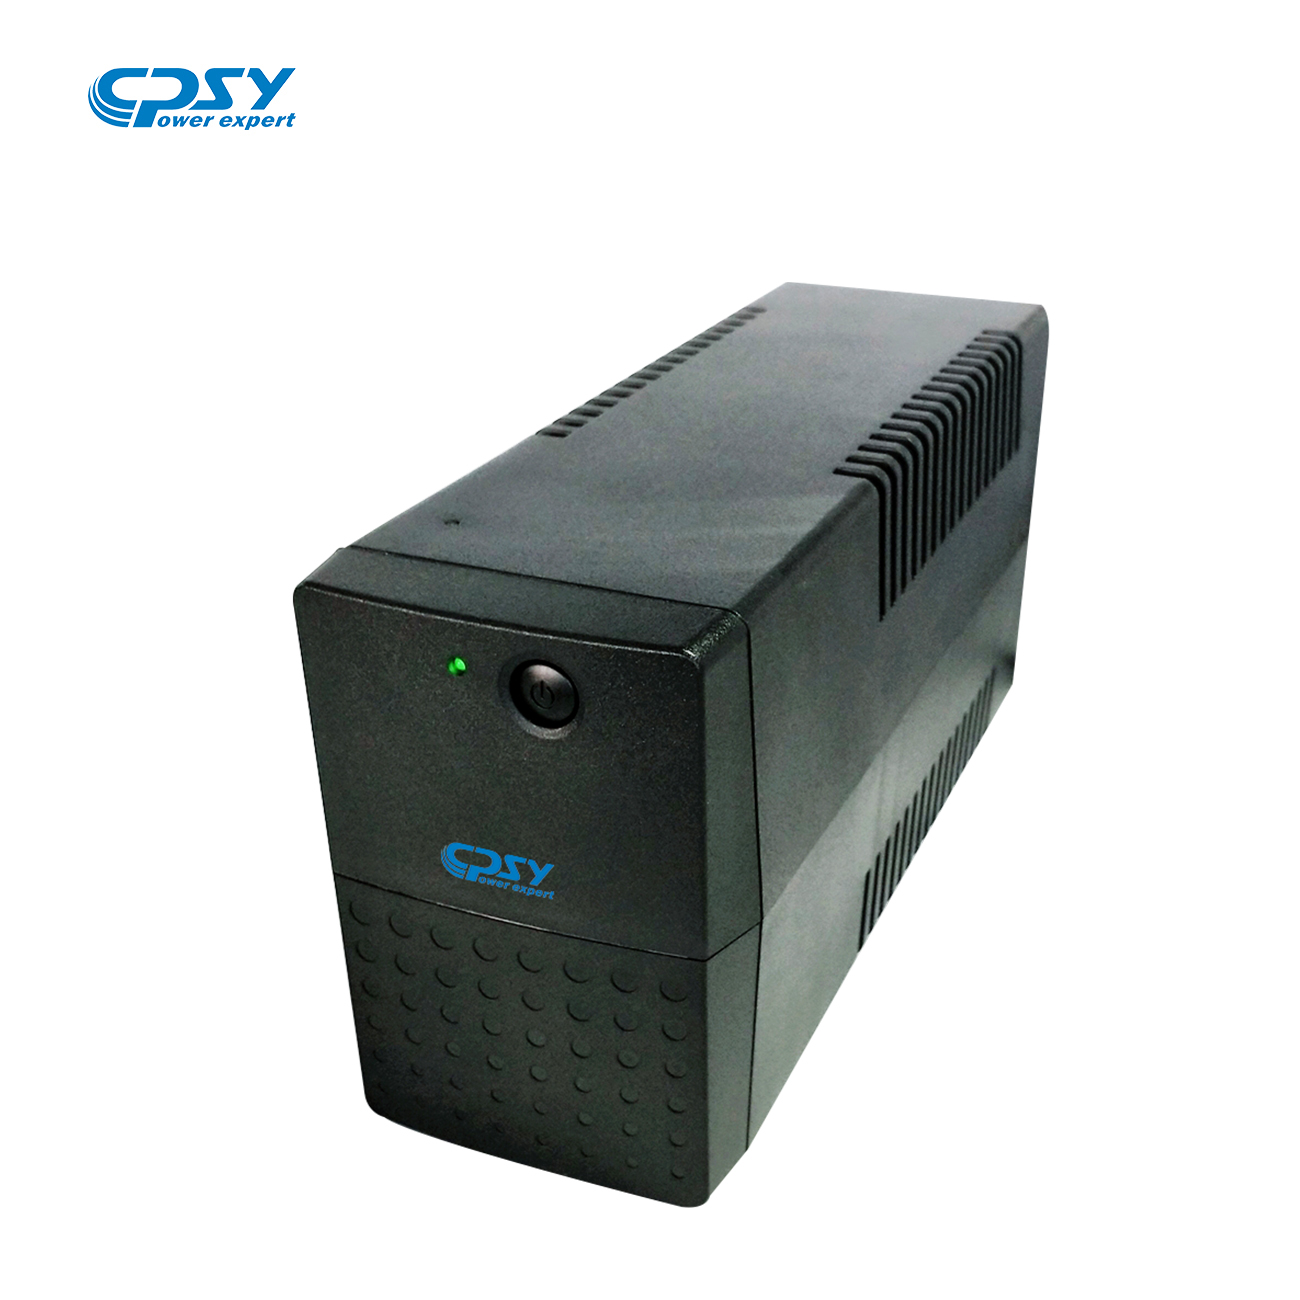 High Quality Offline UPS 600VA Backup UPS For Computer